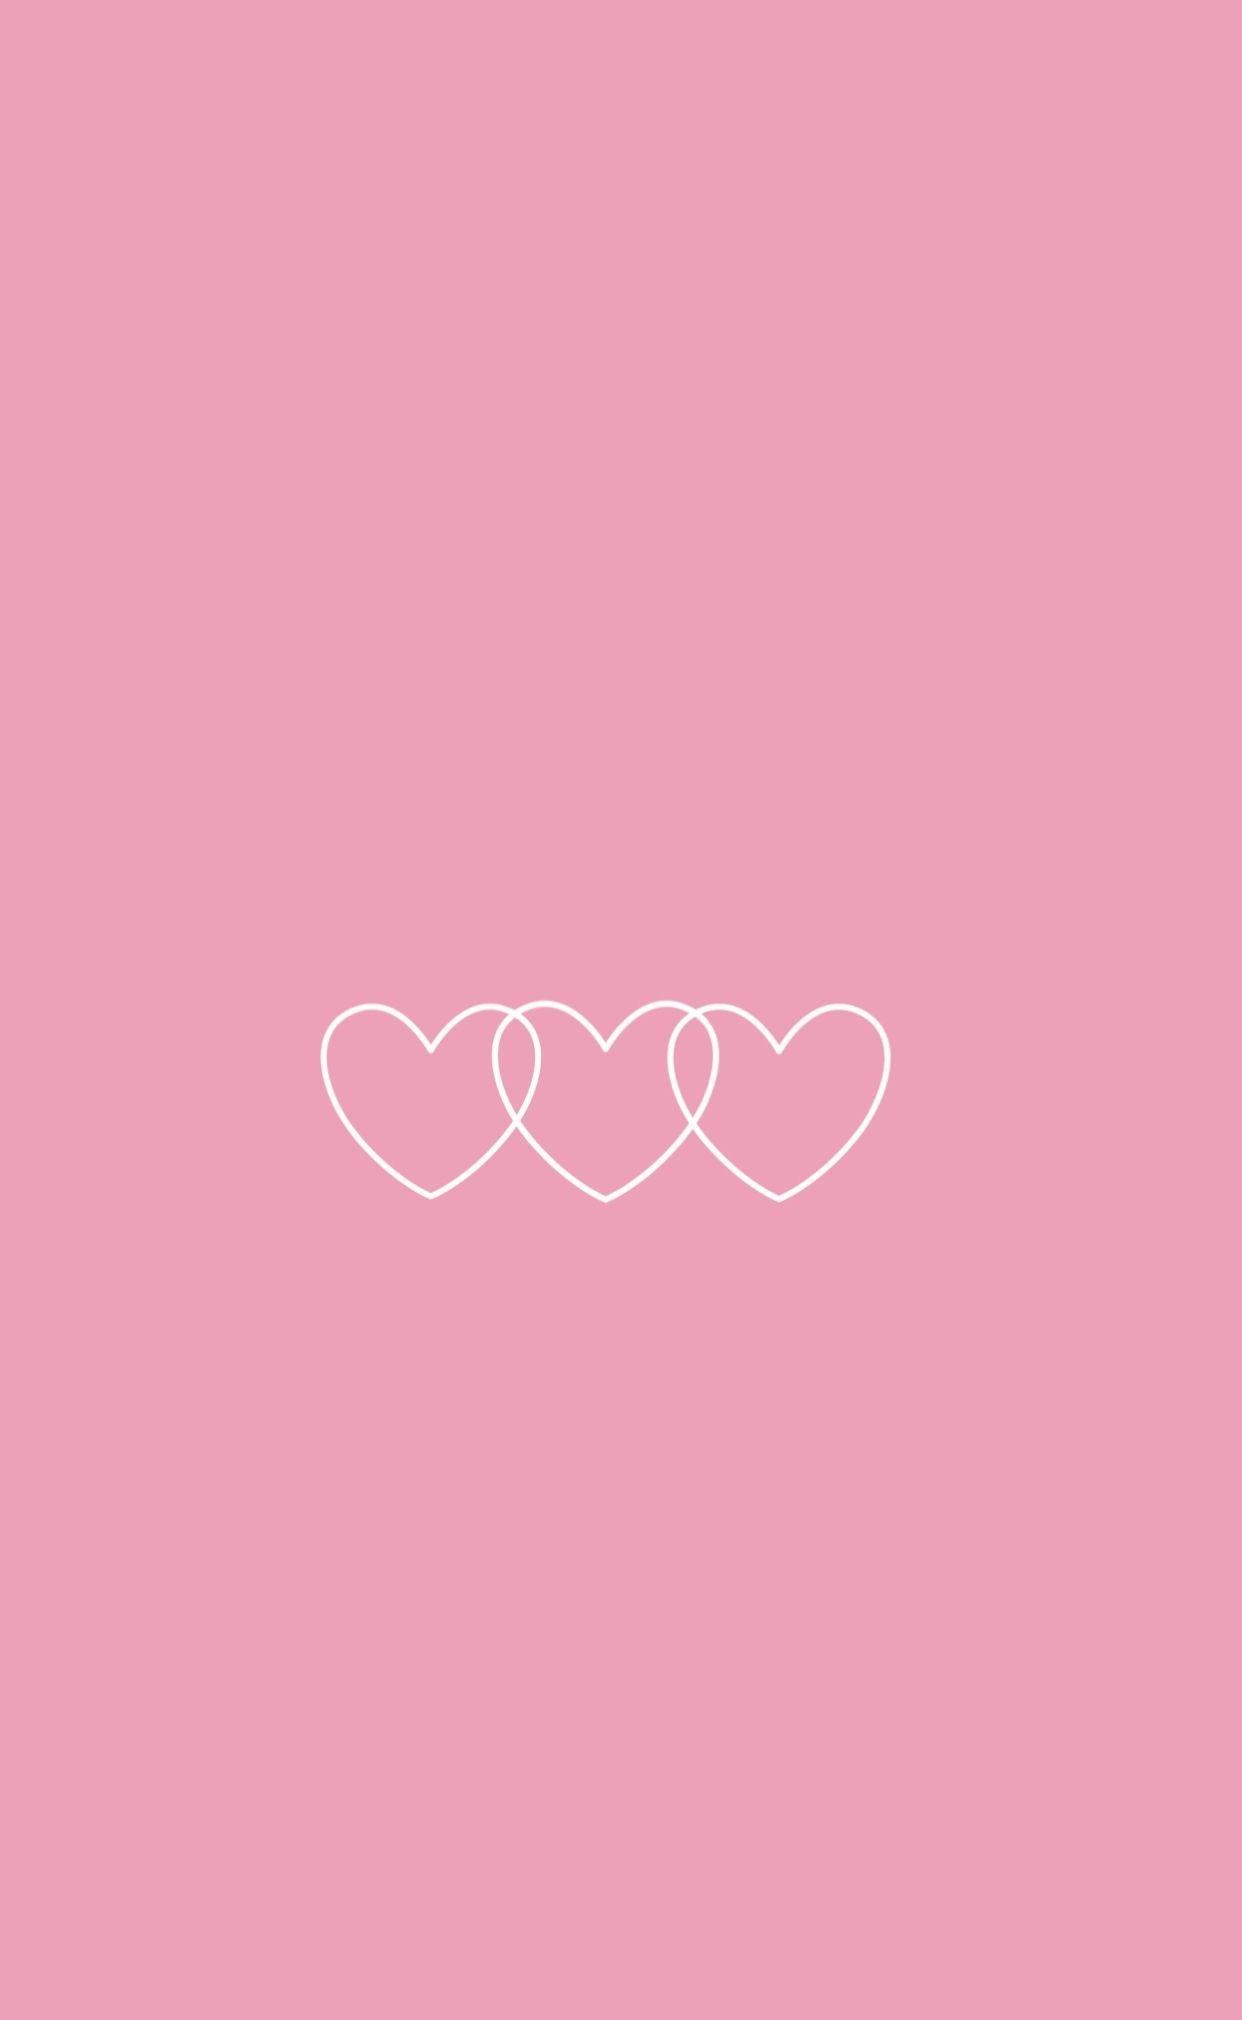 Pink Backgrounds With Love Heqrats Google Search Pink Wallpaper Iphone Cute Pink Background Love Pink Wallpaper